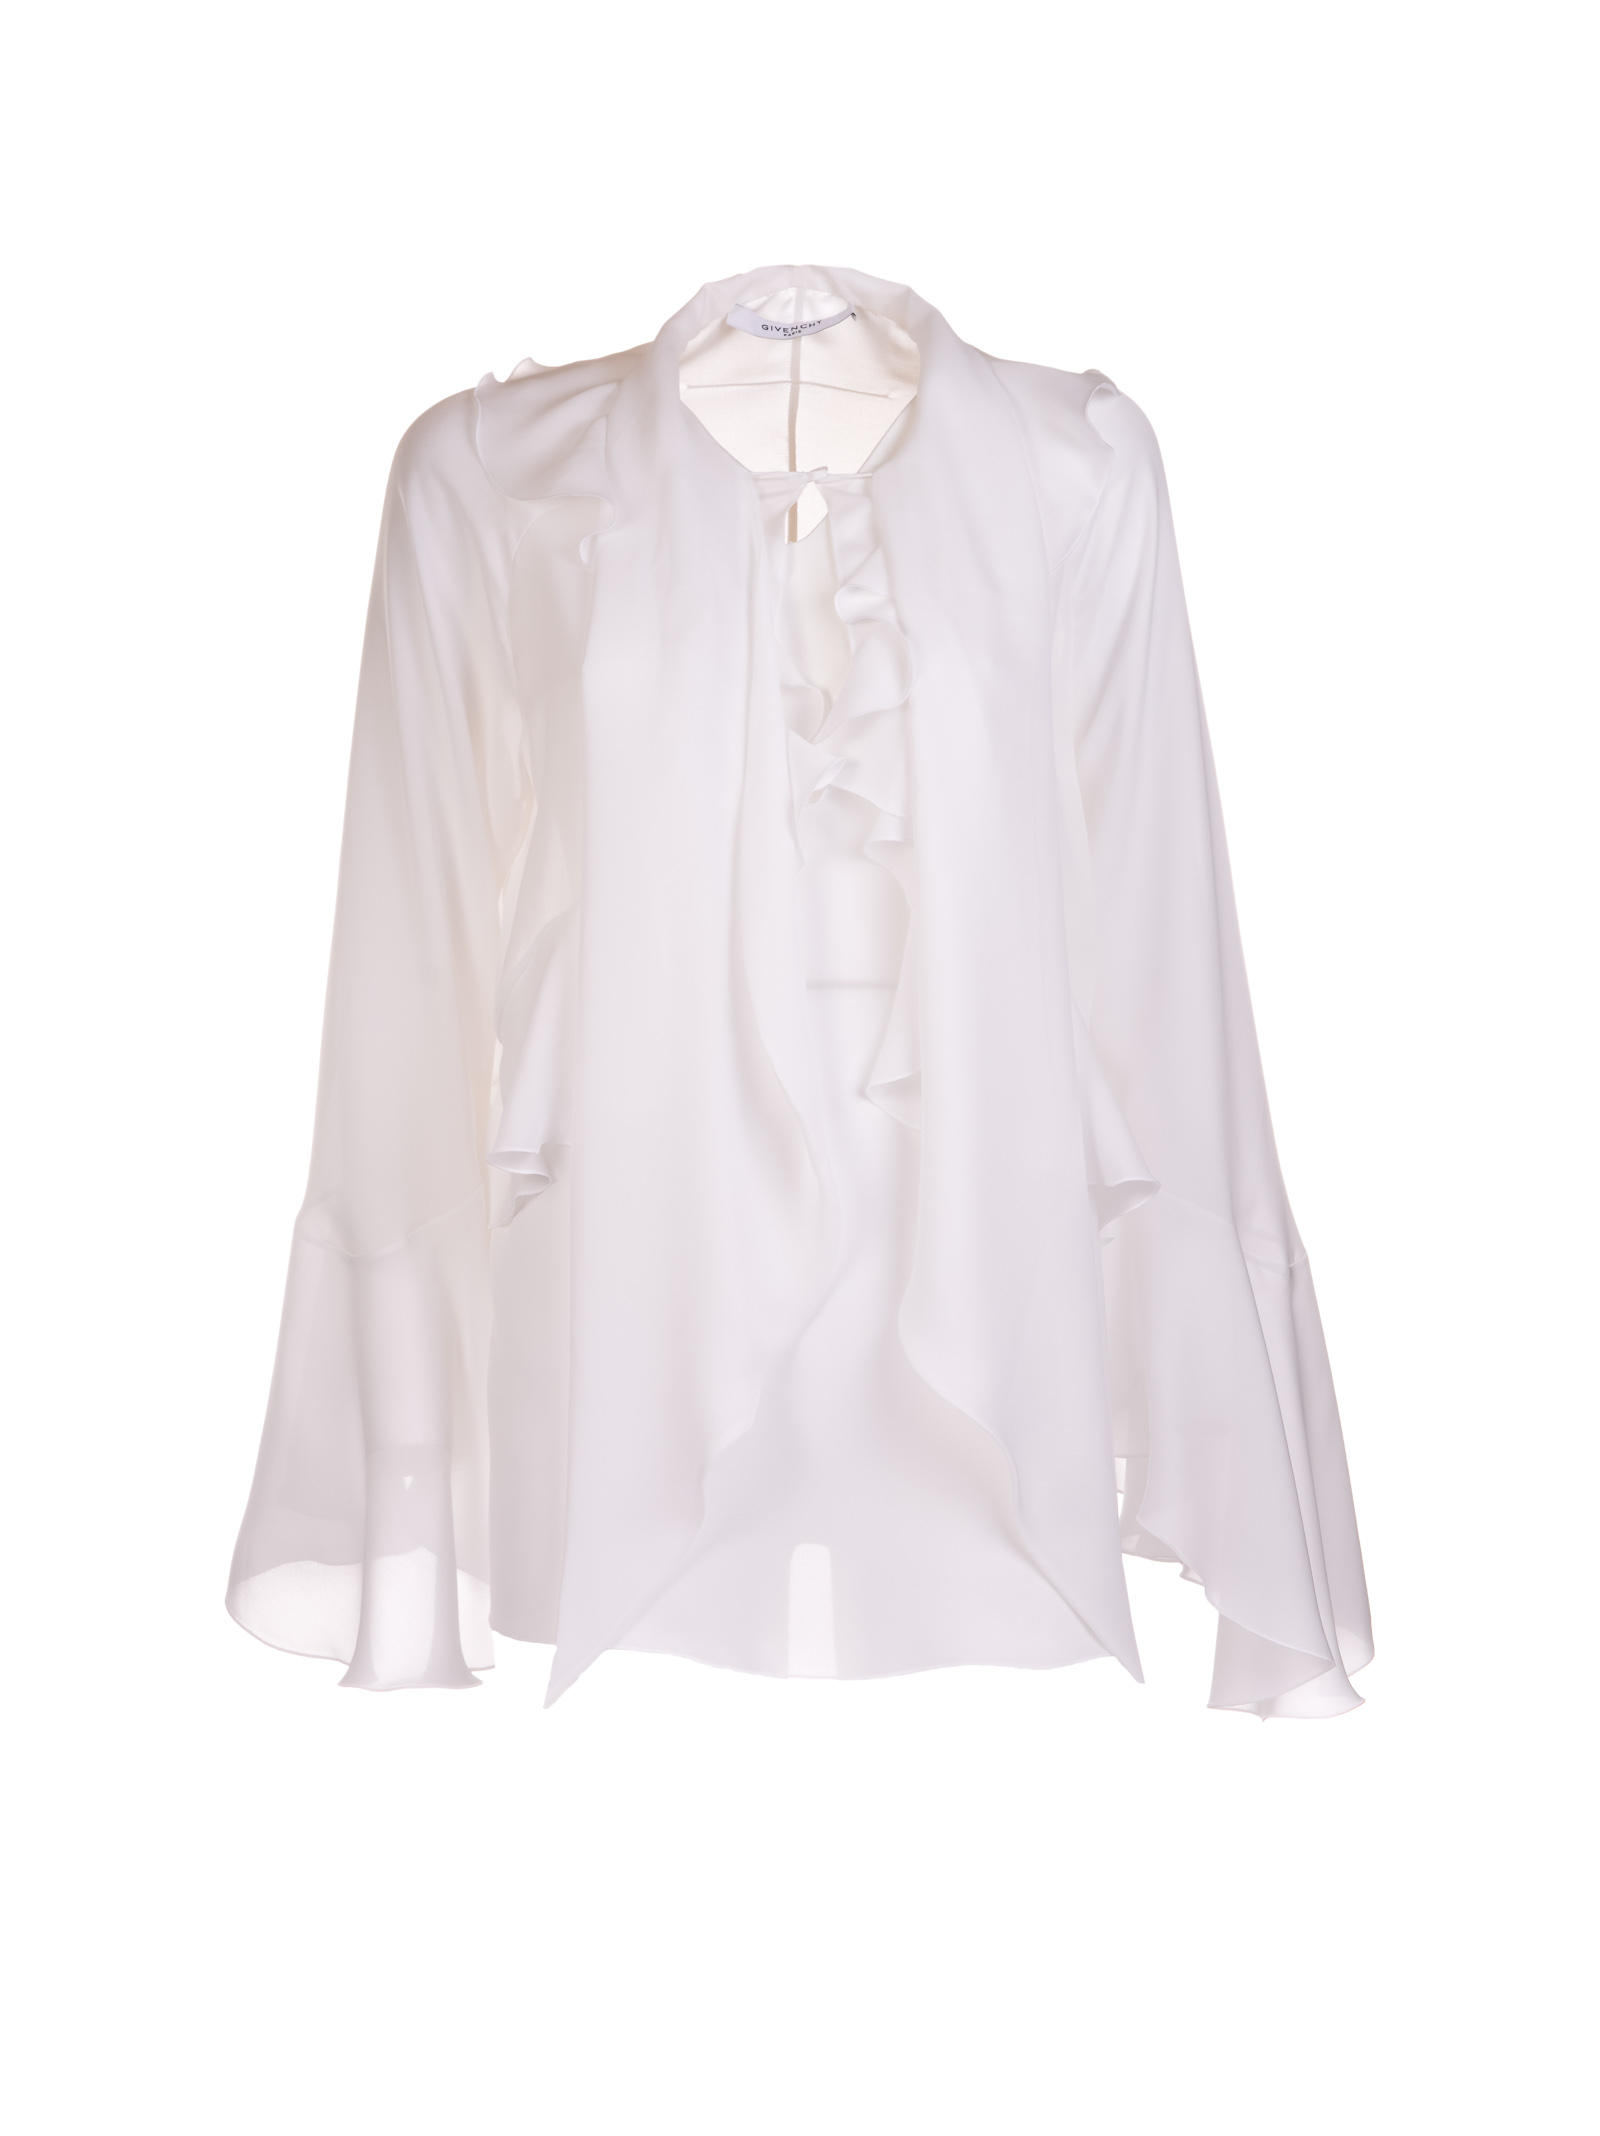 Givenchy Givenchy Ruffled Blouse